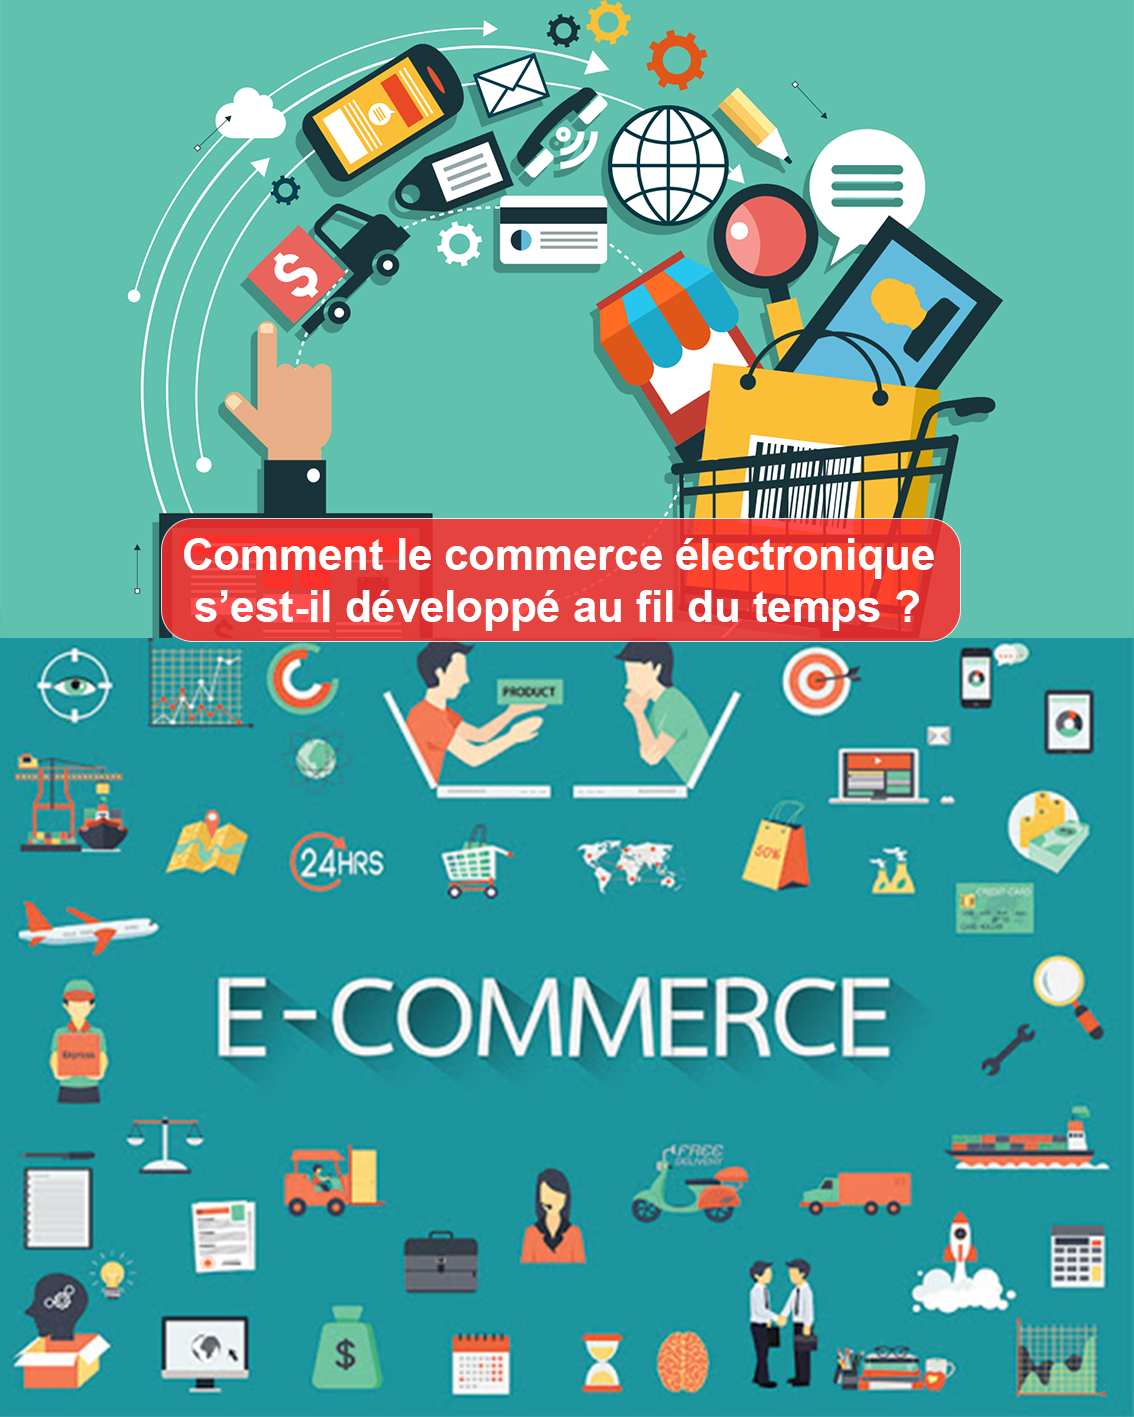 E-commerce call center